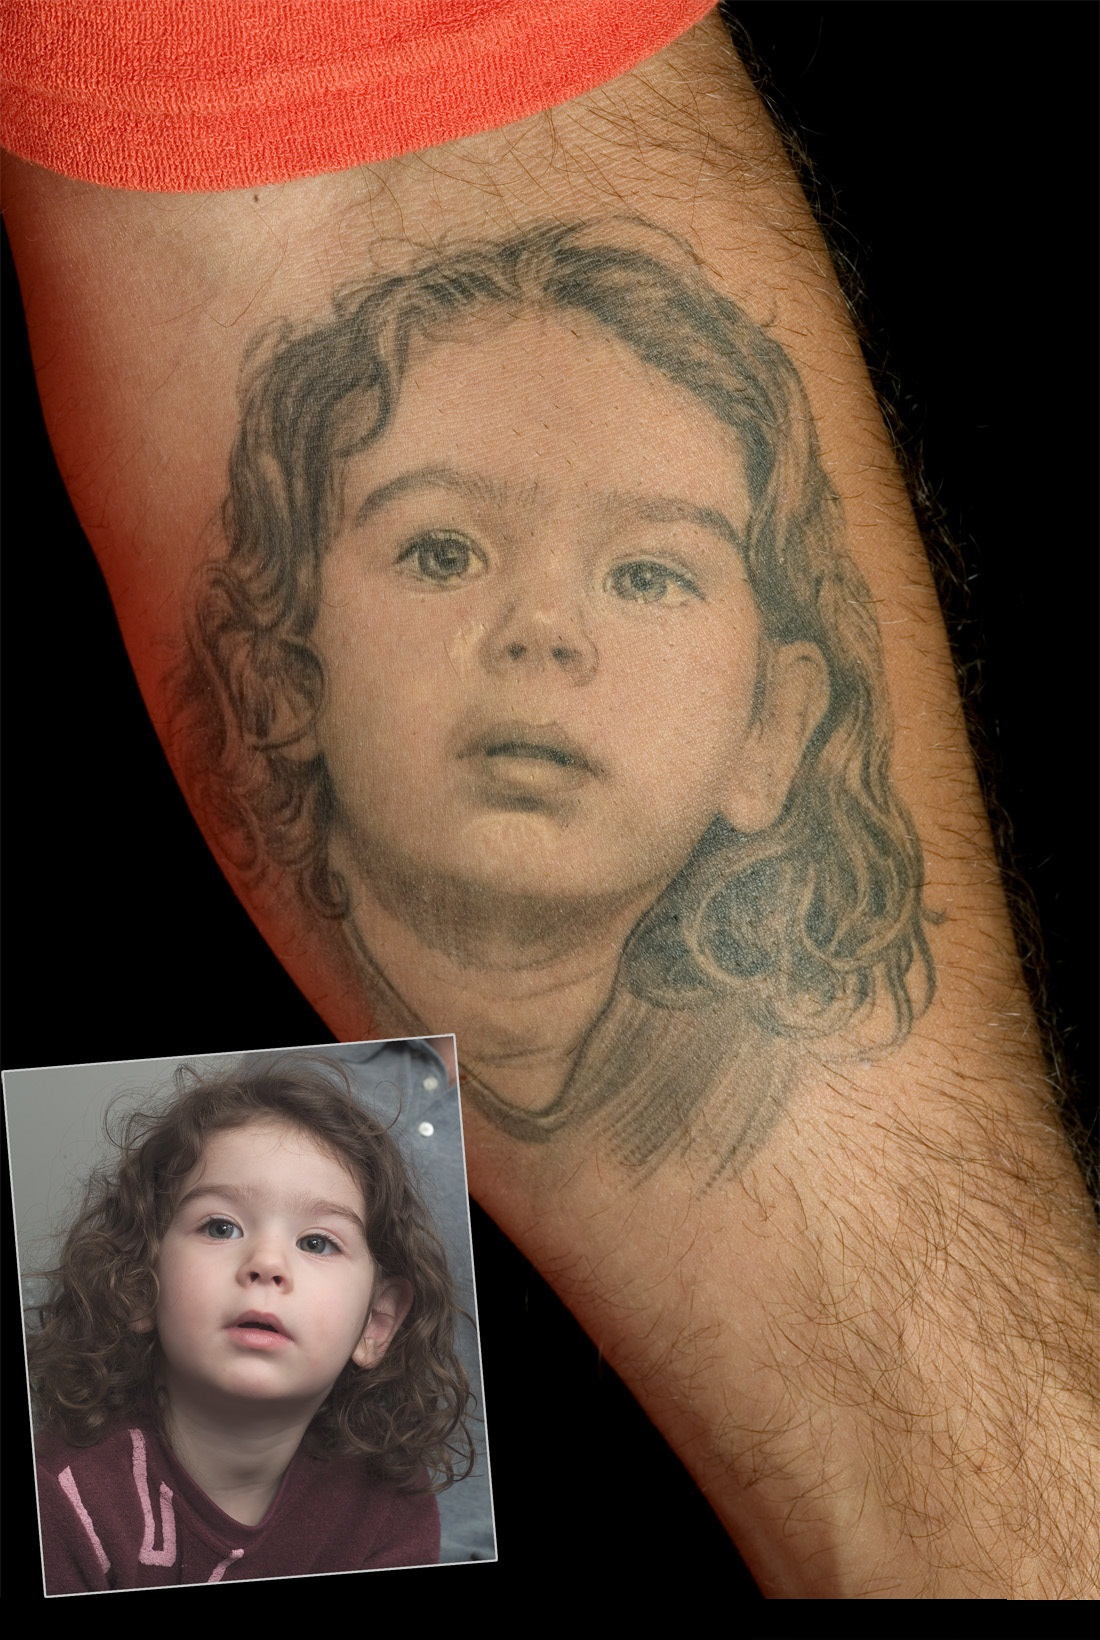 Portrait Tattoos Designs, Ideas and Meaning | Tattoos For You